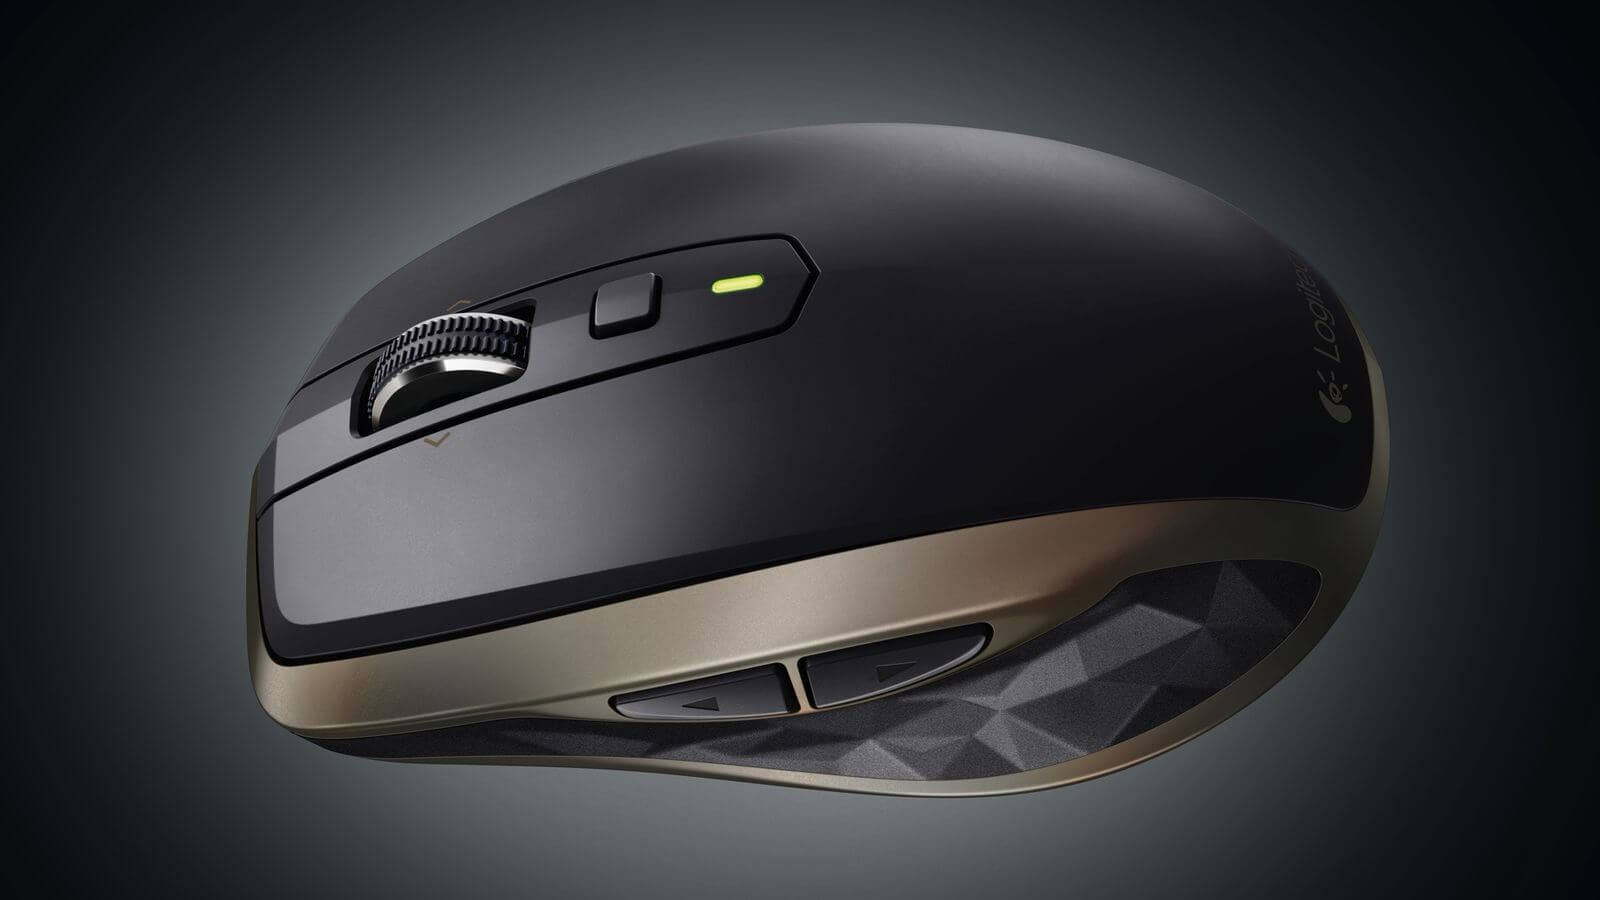 mx anywhere 2 horizontal.0.0 - Review: Mouse Logitech MX Anywhere 2